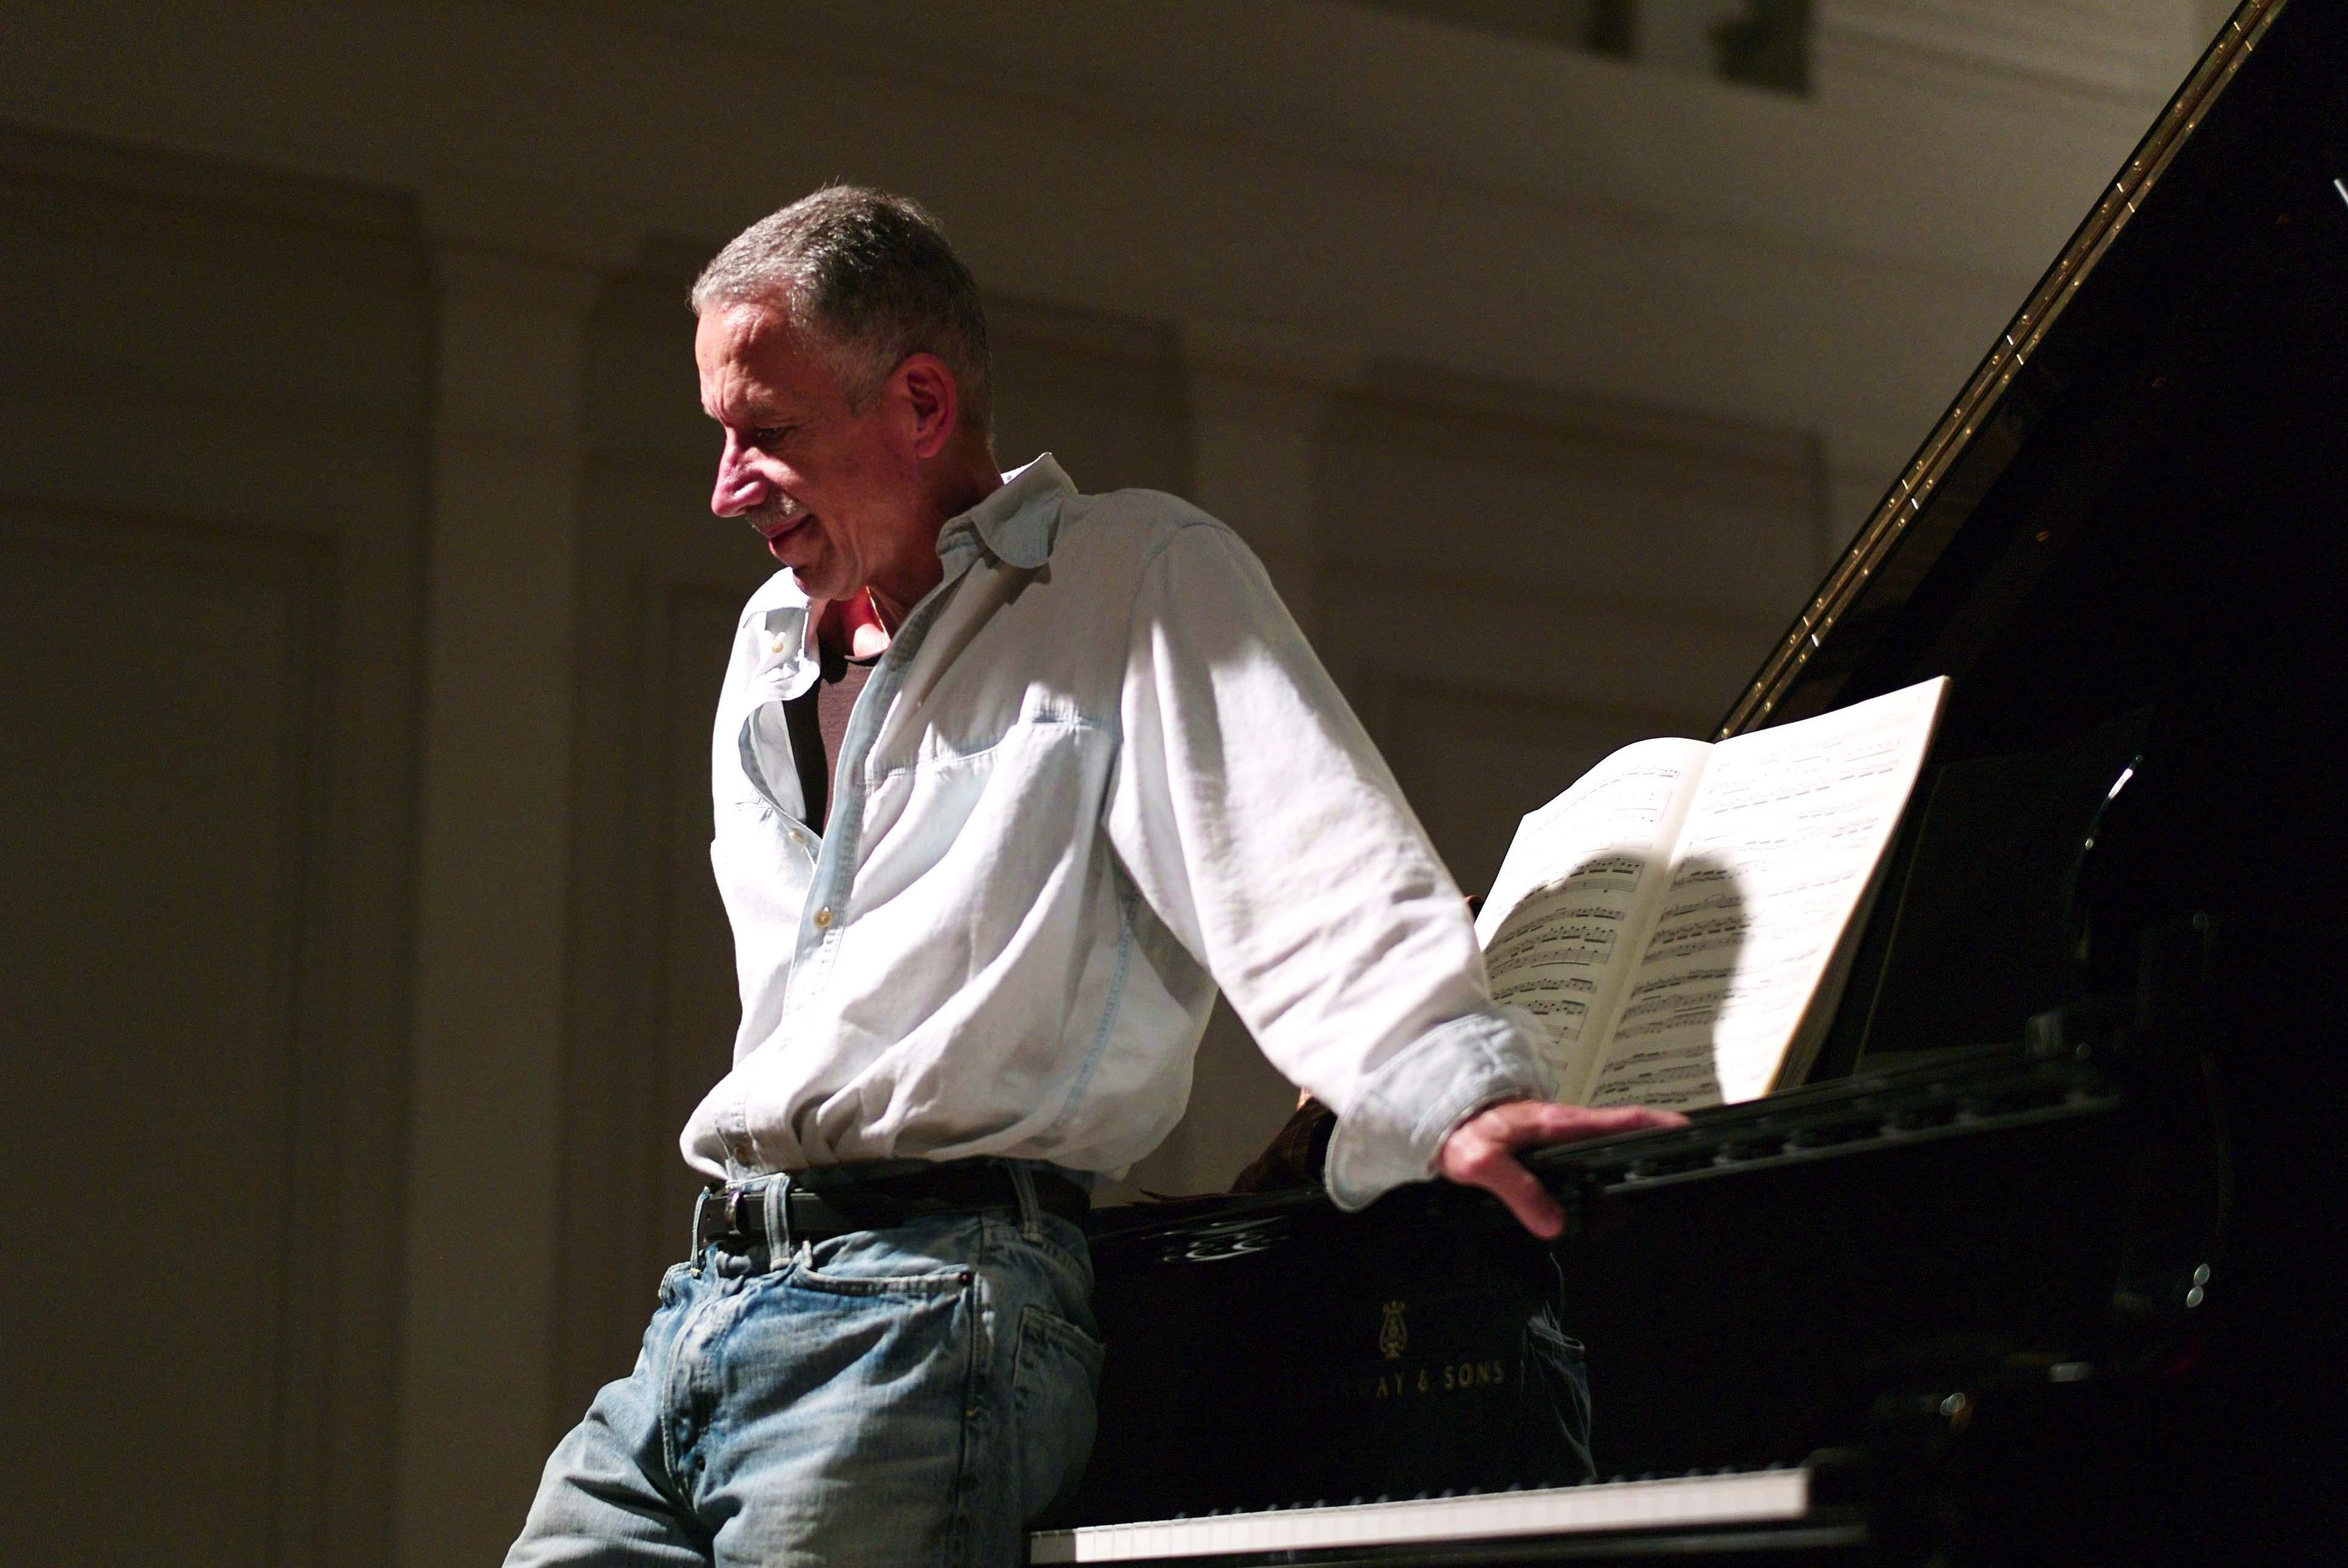 Keith Jarrett at the American Academy of Arts and Letters in New York in 2010. (Handout/AP)